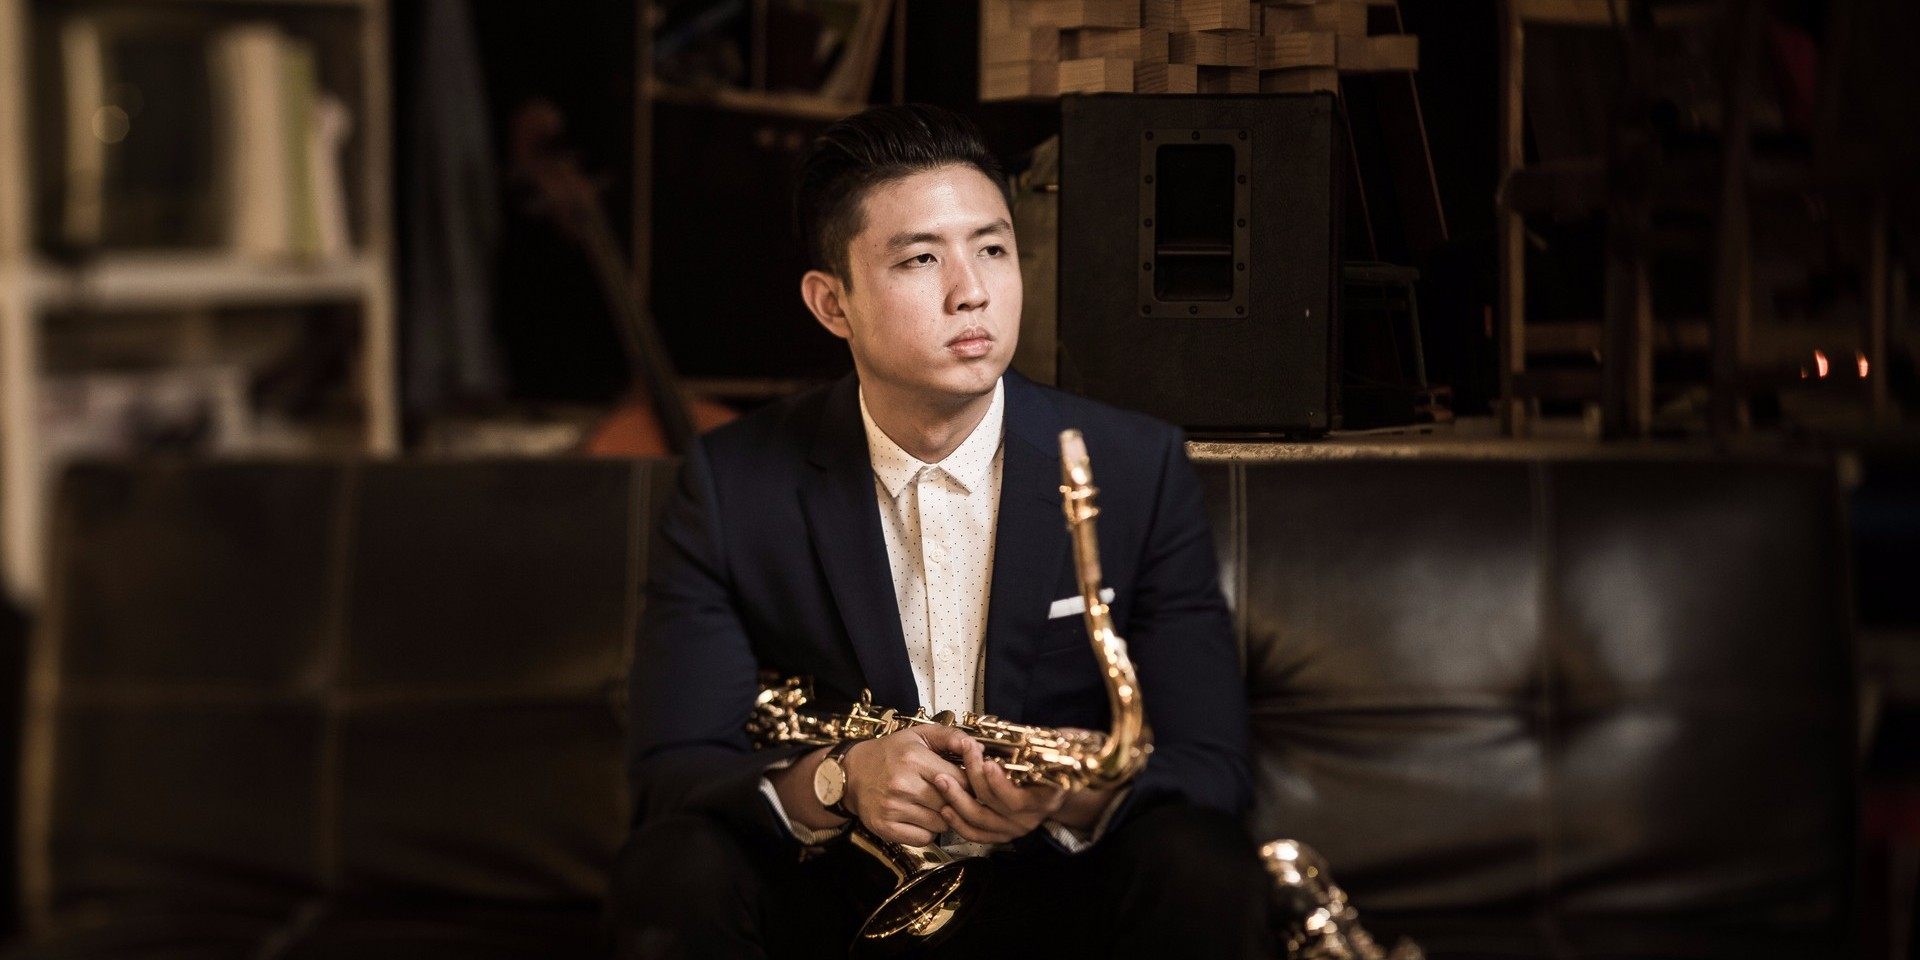 Singaporean saxophonist Daniel Chia to perform with Larry Carlton and Paul Brown in the US